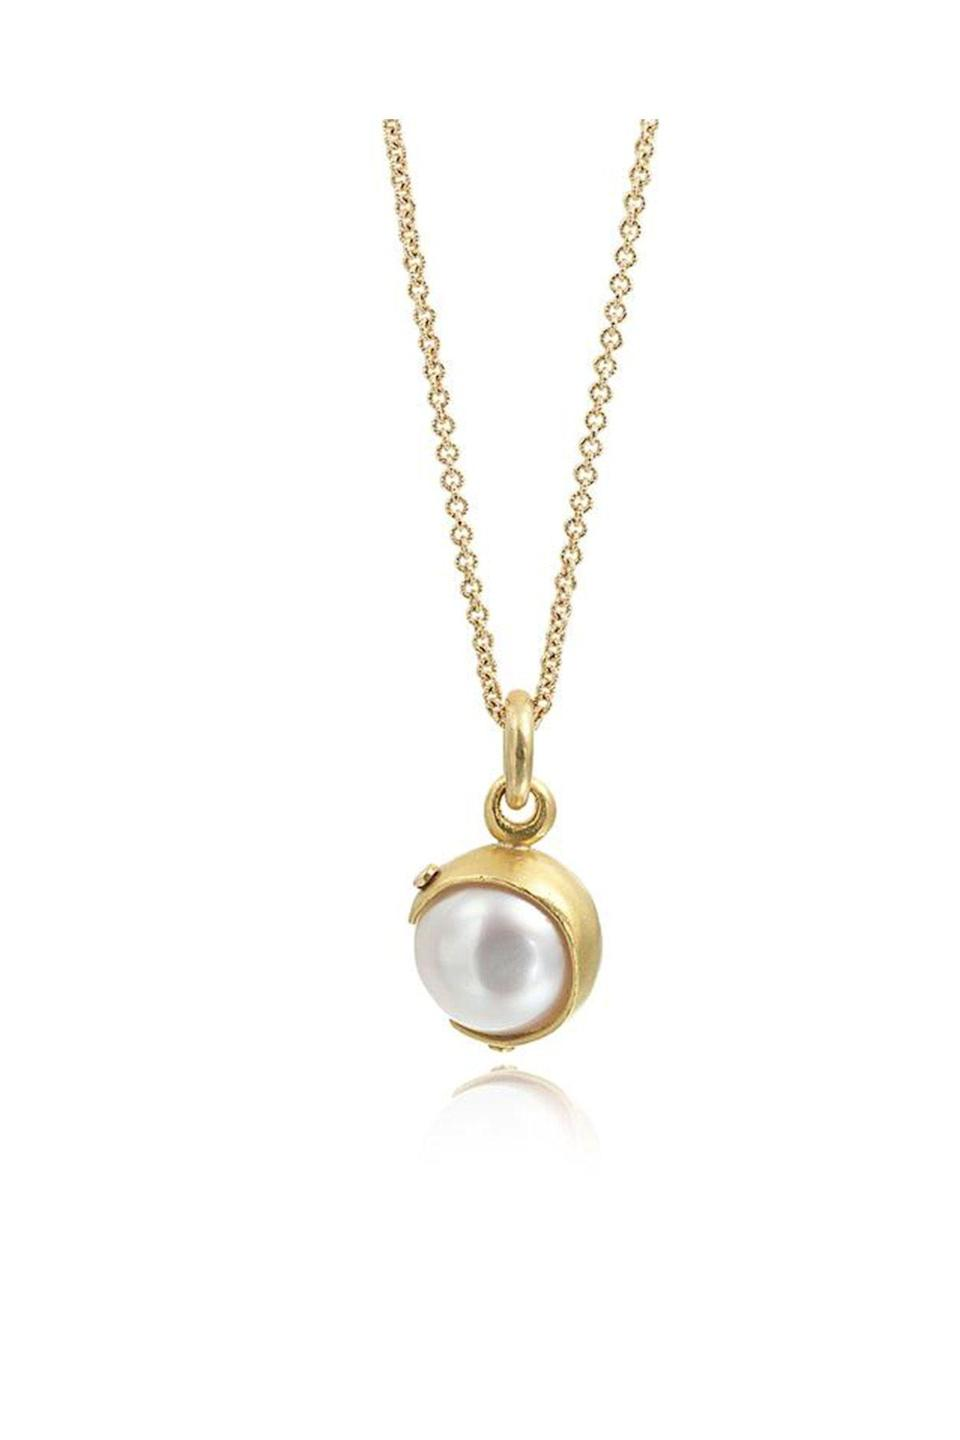 """<p><strong>Eli Halili</strong></p><p>elihalili.com</p><p><strong>$8000.00</strong></p><p><a href=""""https://elihalili.com/products/white-pearl-pendant?_pos=3&_sid=778e5ecea&_ss=r"""" rel=""""nofollow noopener"""" target=""""_blank"""" data-ylk=""""slk:Shop Now"""" class=""""link rapid-noclick-resp"""">Shop Now</a></p><p>Designer Eli Halili takes cues from ancient Middle Eastern designs to create his modern jewels in Brooklyn. A hand-forged gold setting encases a pearl pendant in this strong, yet delicate, necklace. </p>"""